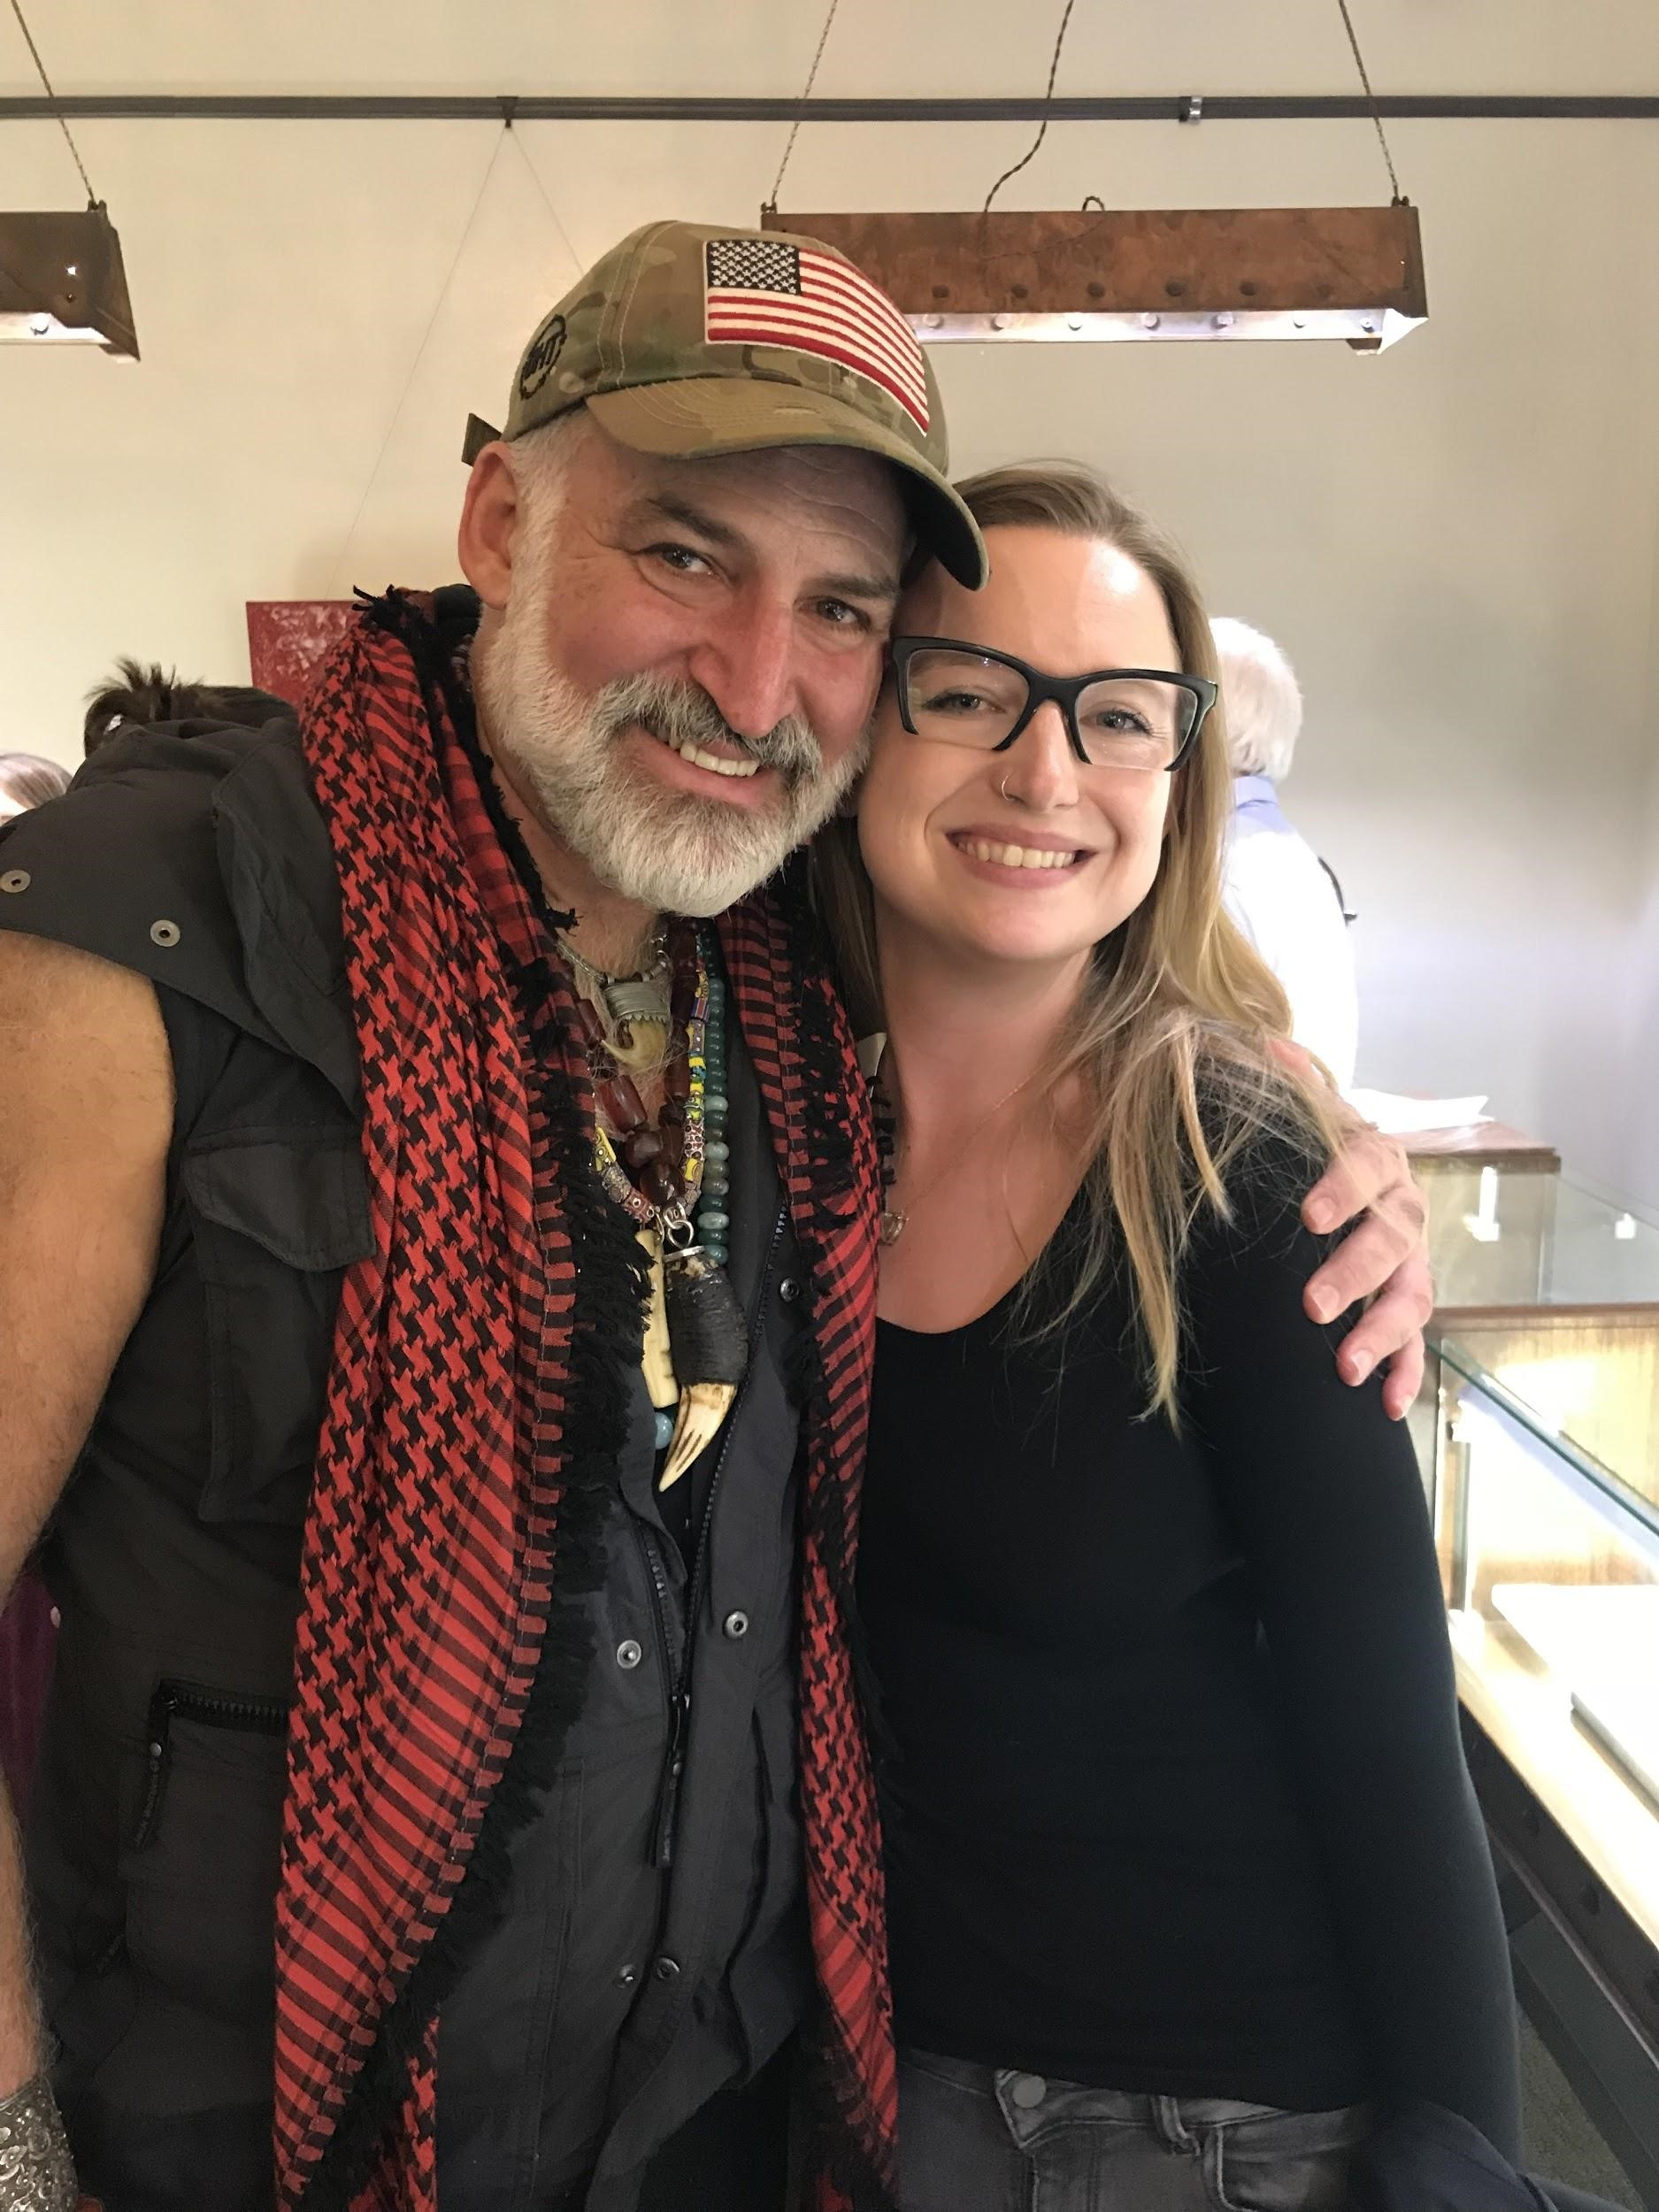 (Yianni Melas, the Gem Explorer and me)